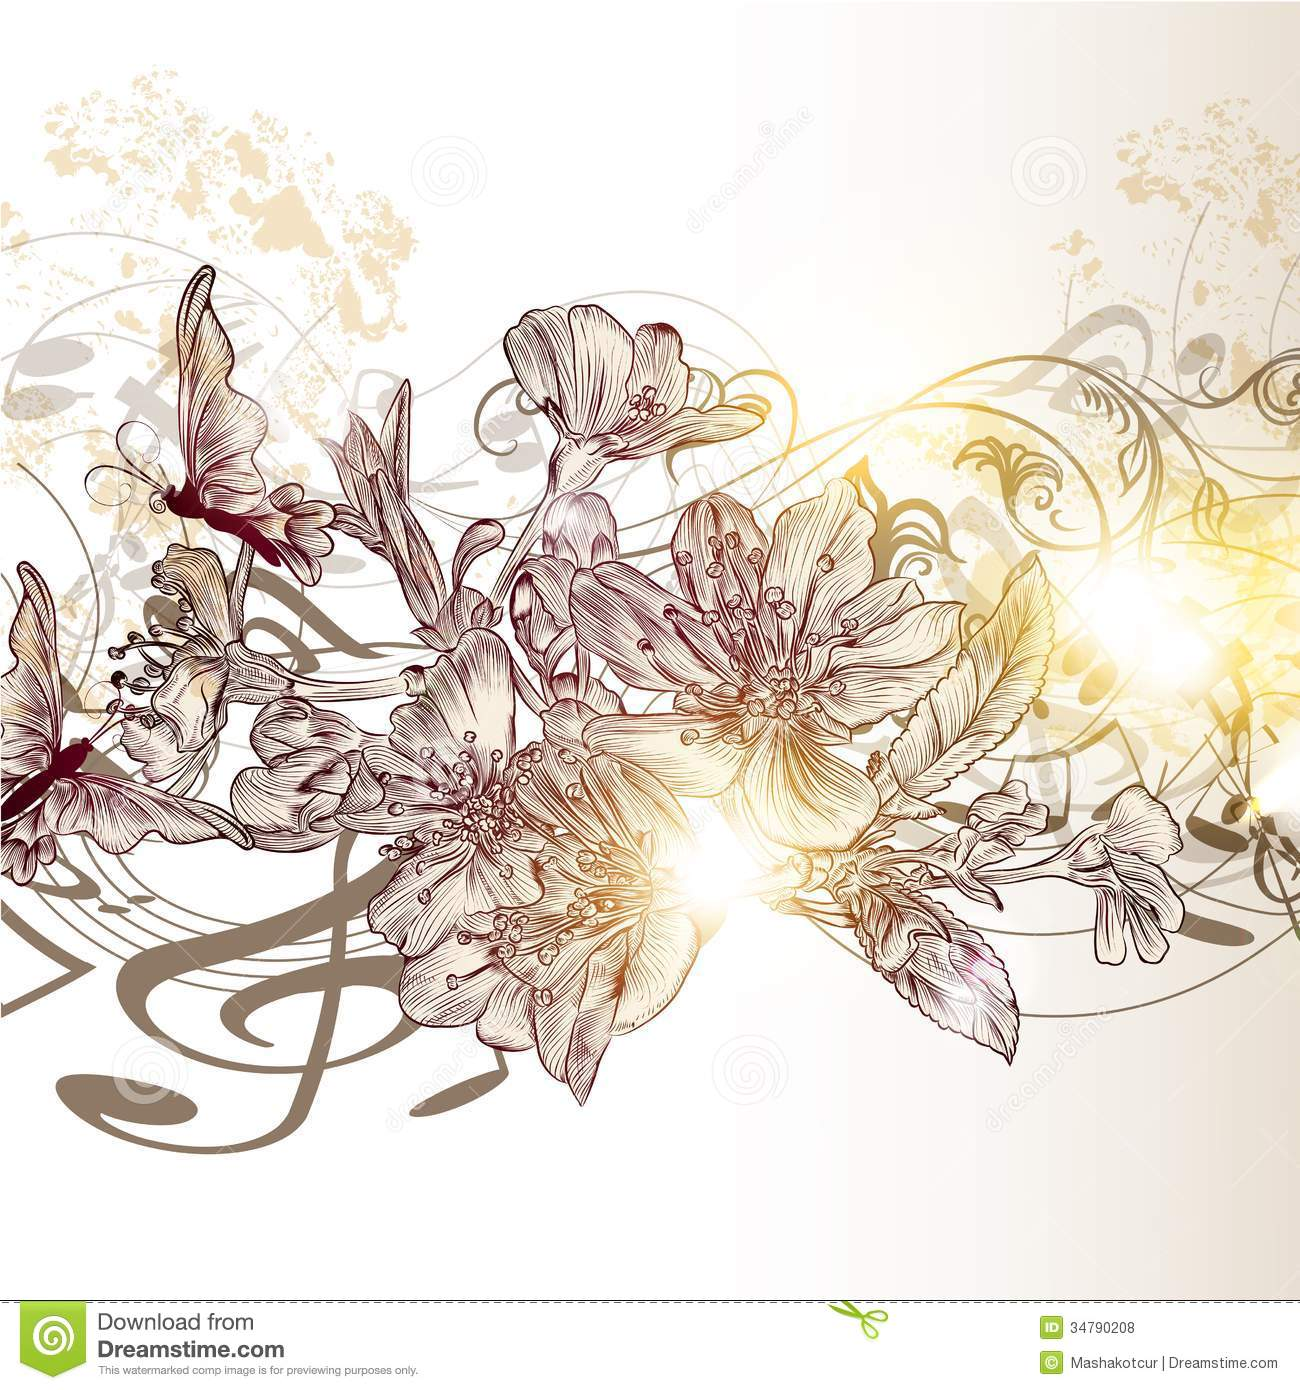 music notes backgrounds floral - photo #11